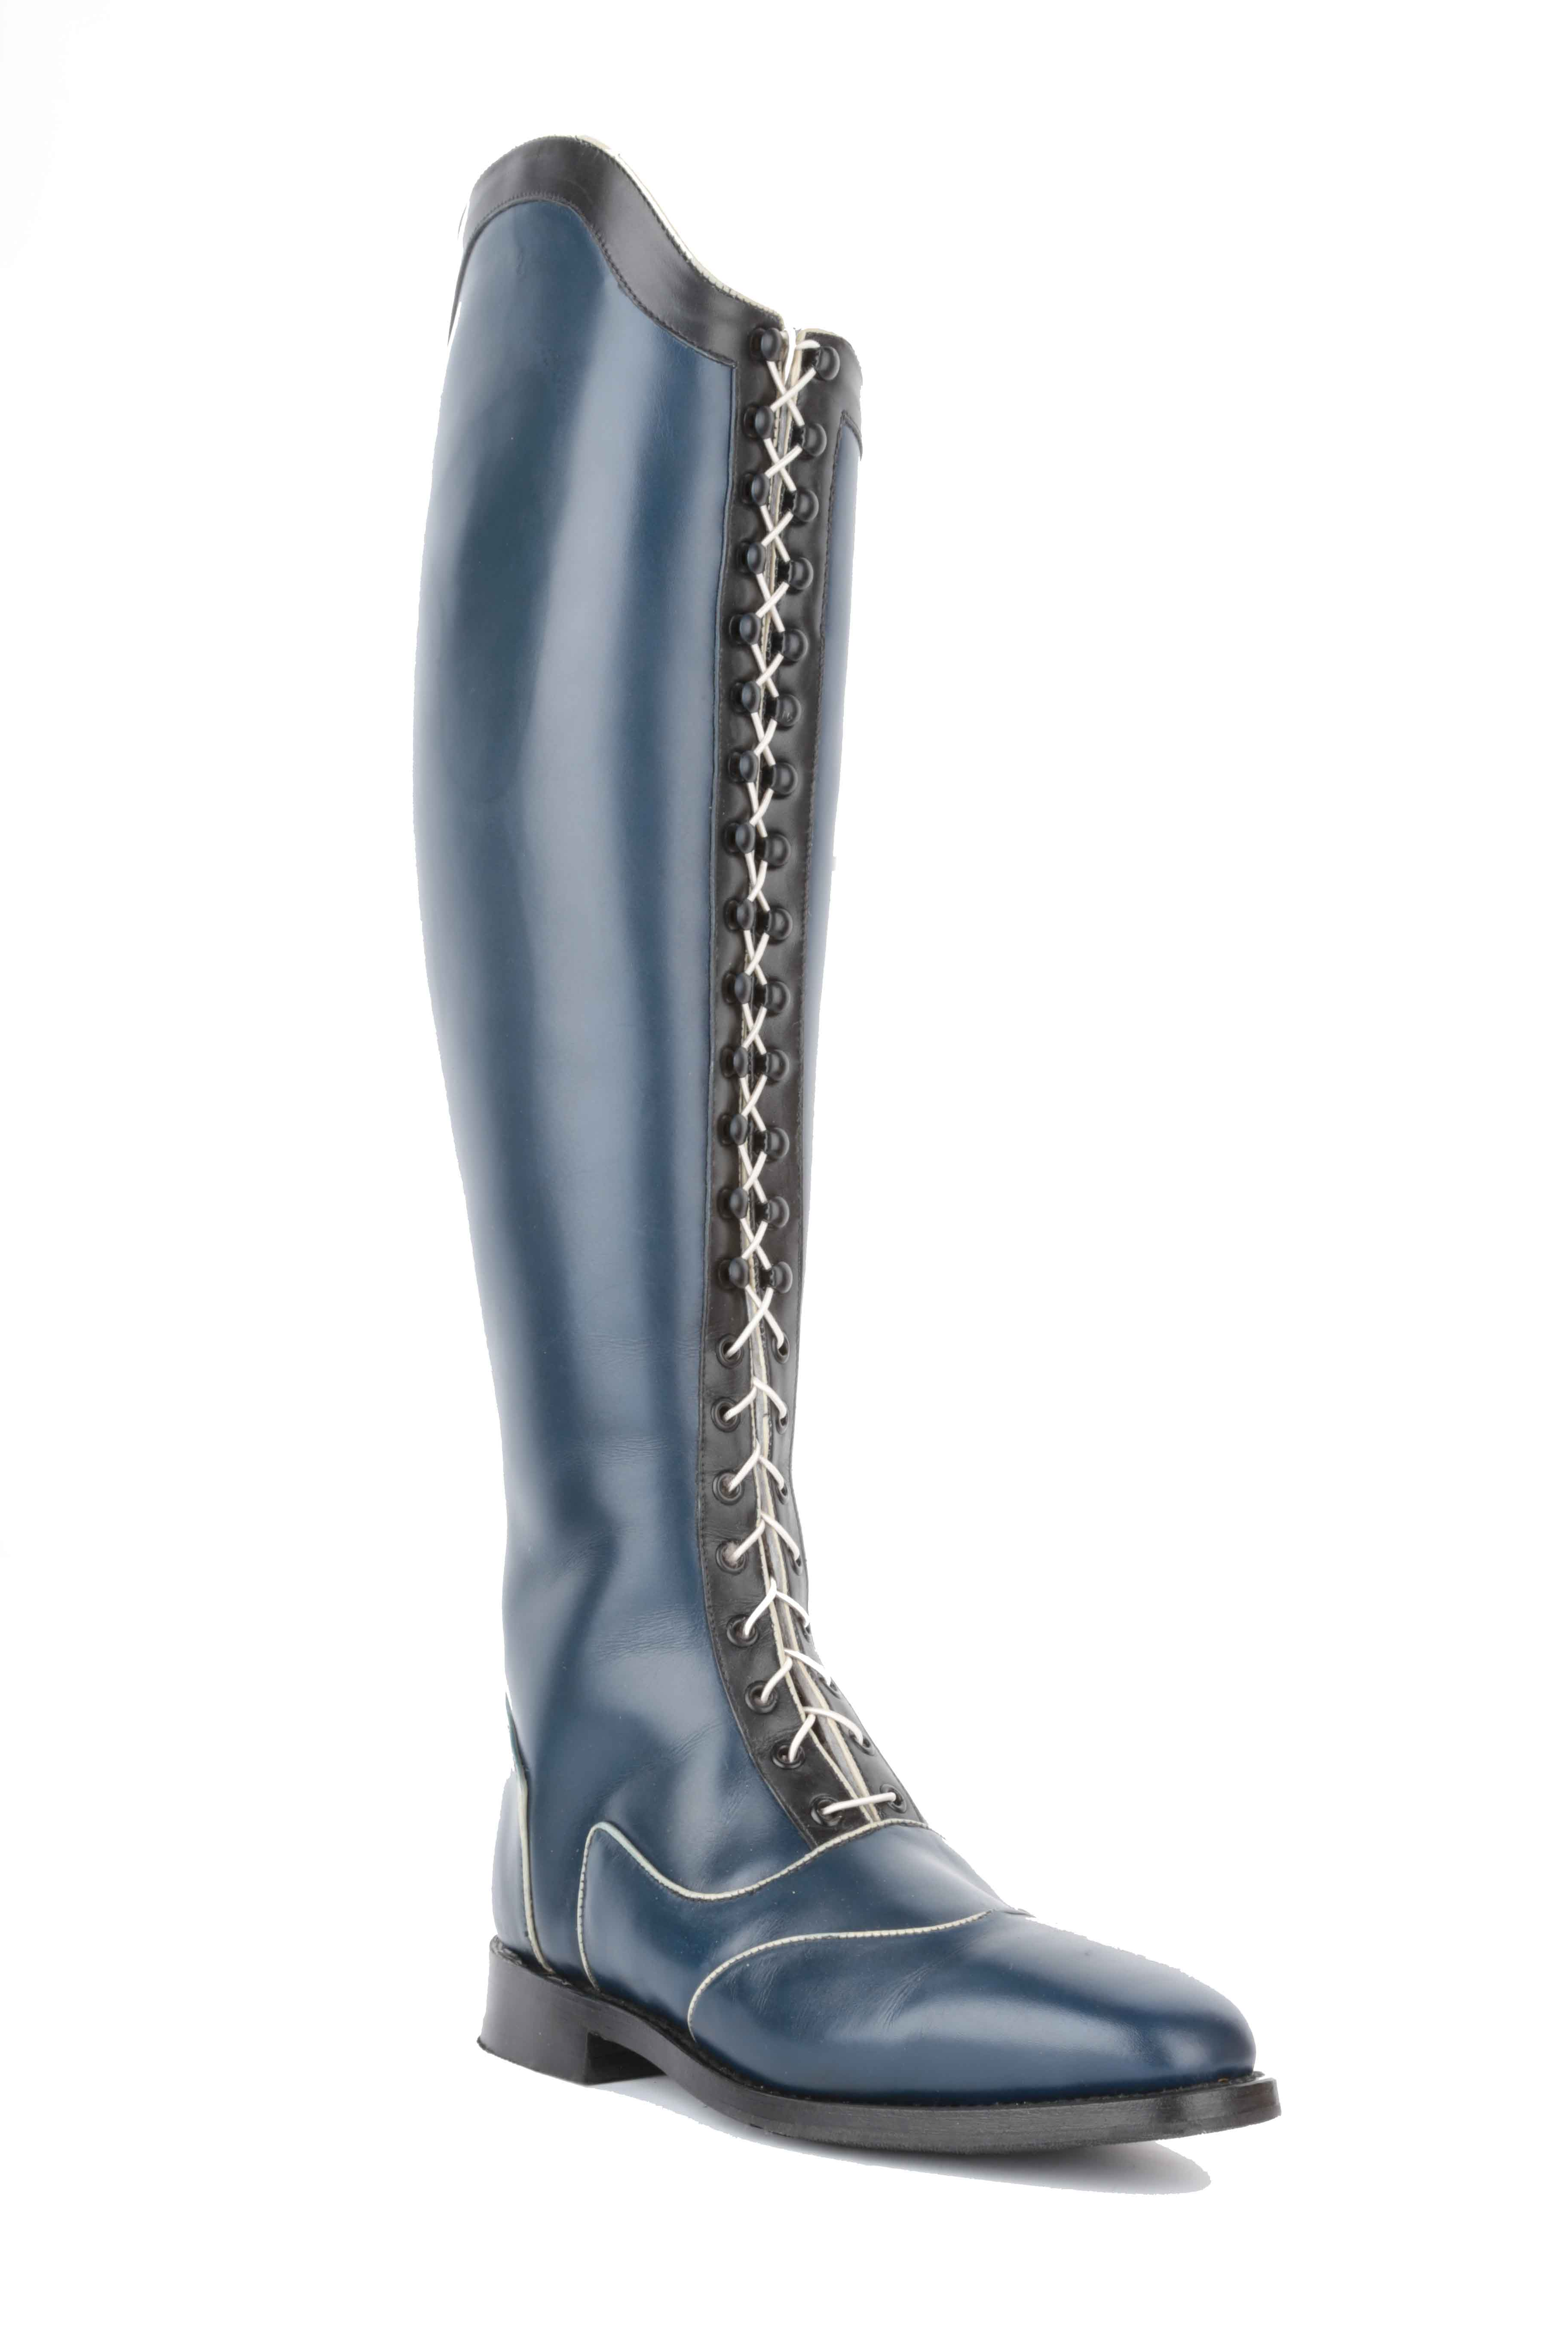 K 246 Nigs Polo Spezial Riding Boot With Complete Lacing